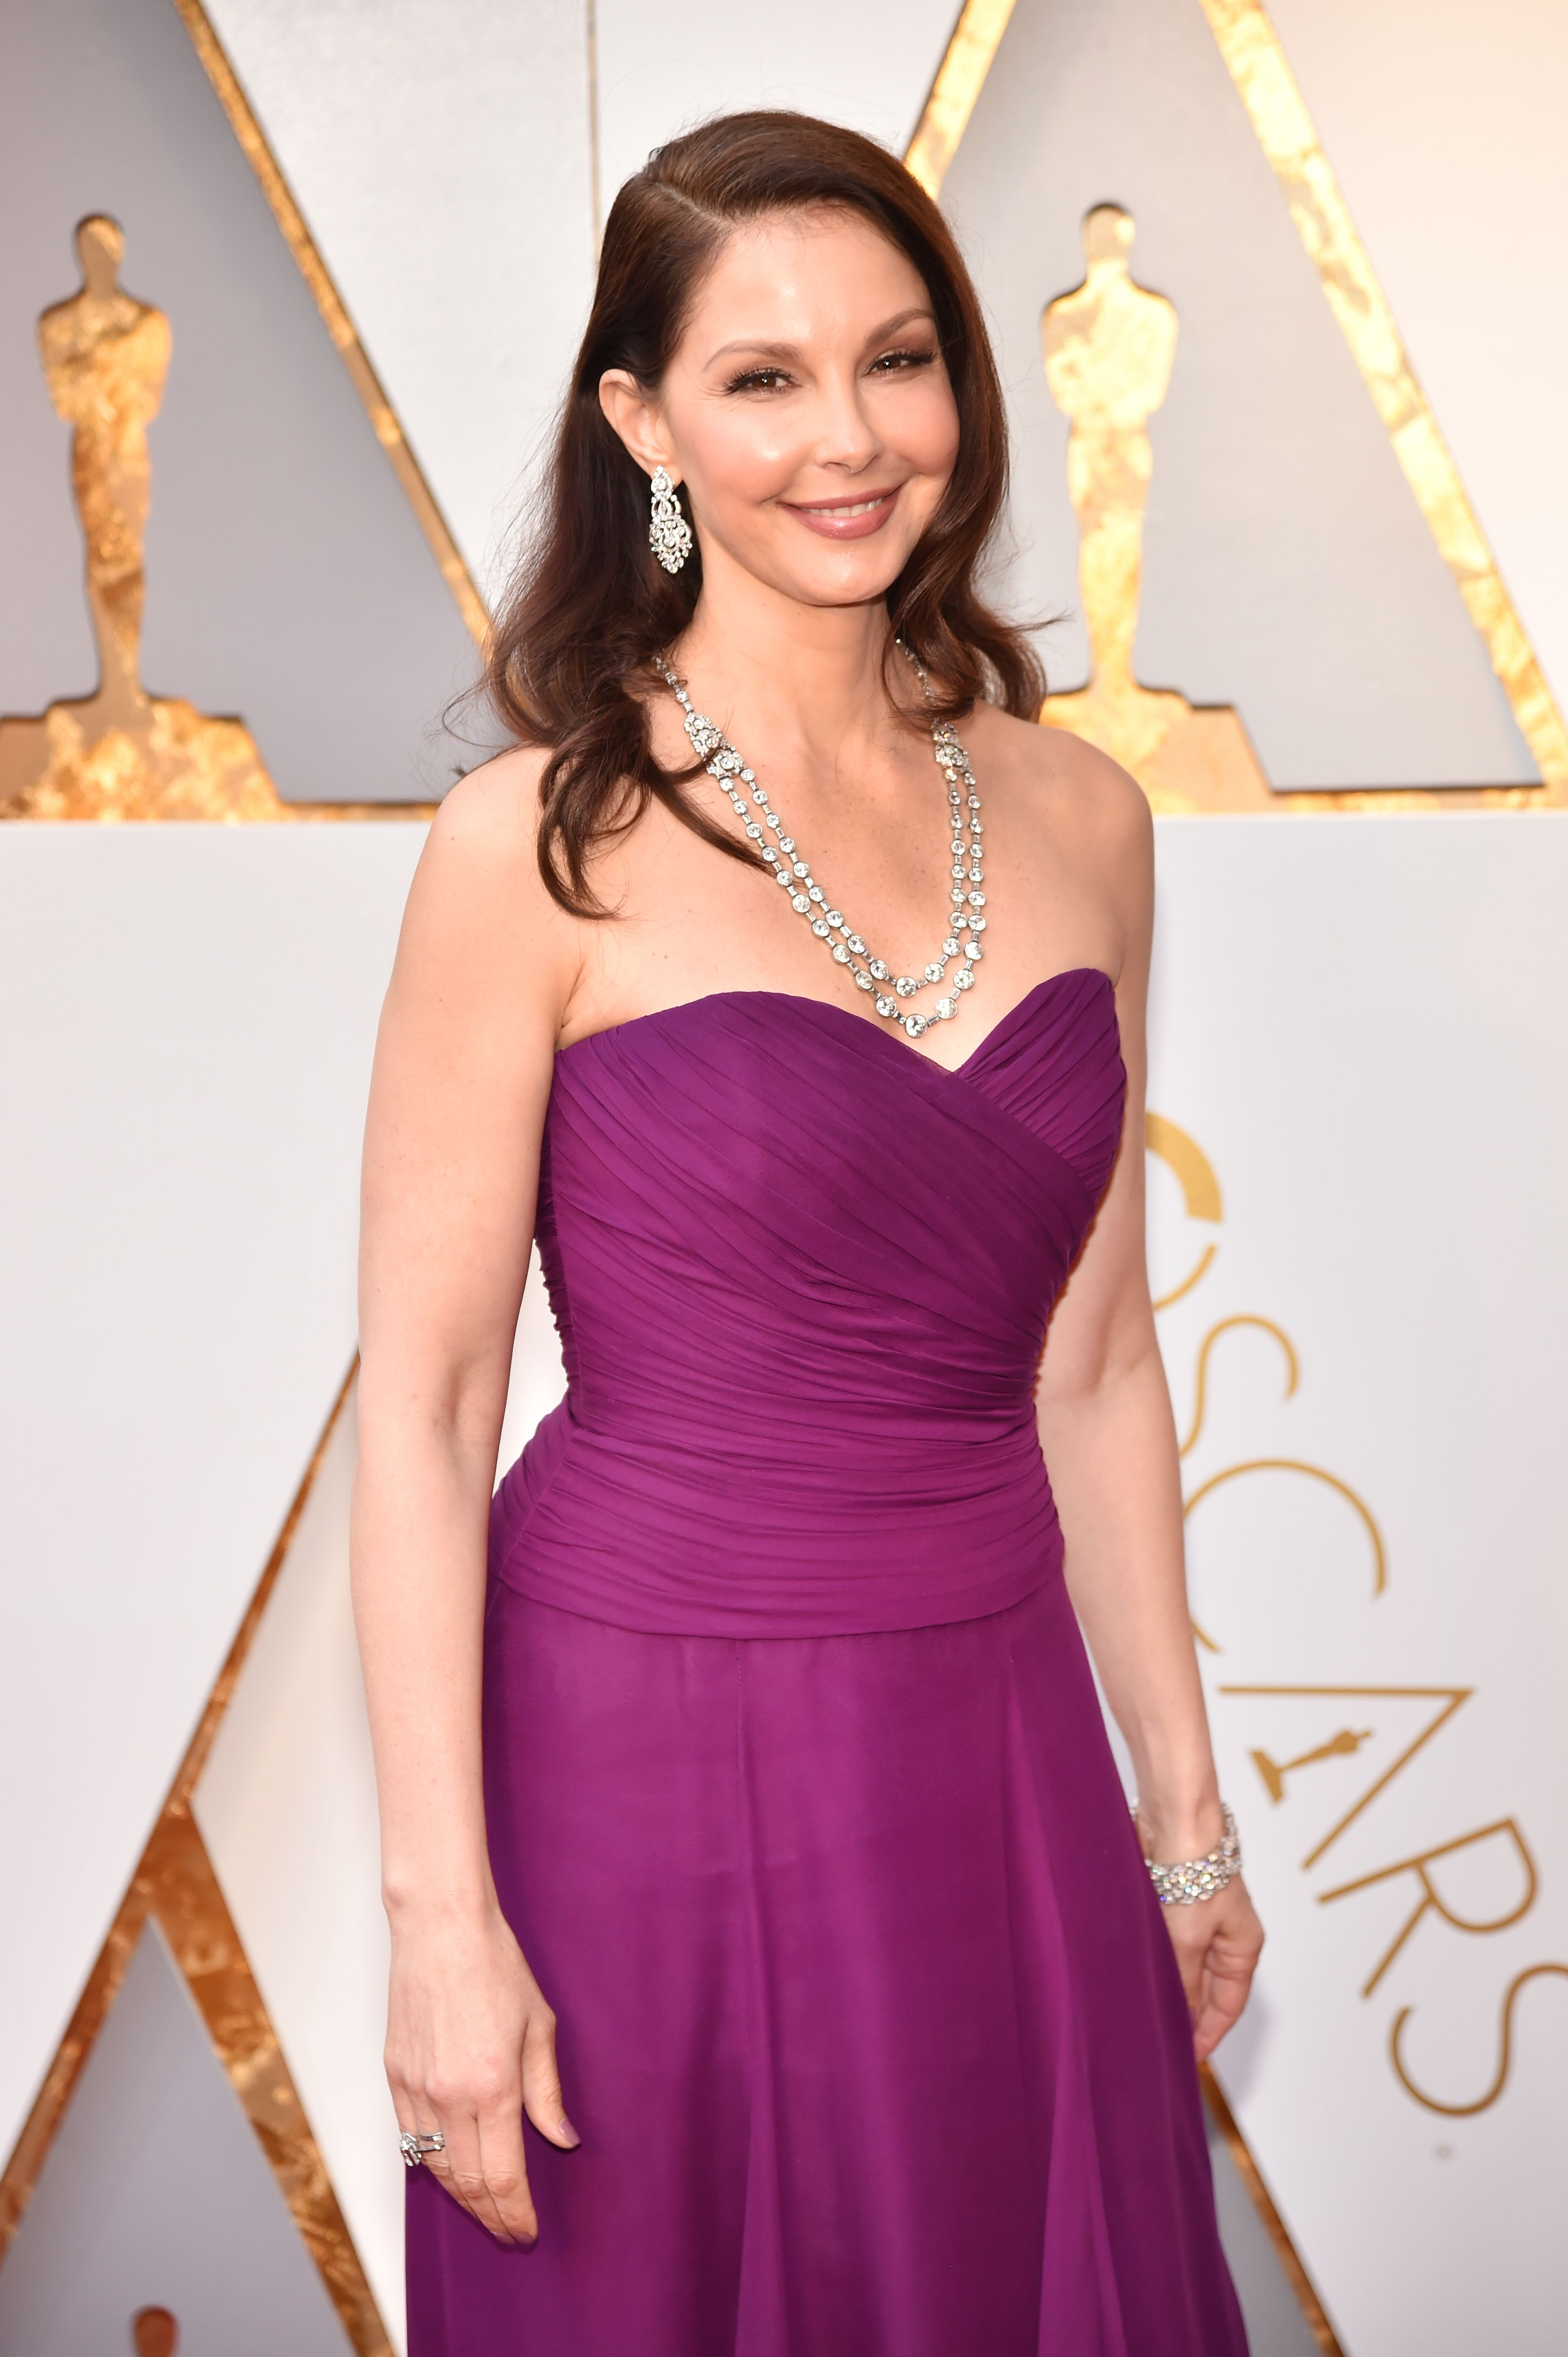 Oscars 2018 Best Jewelry - Top Red Carpet Necklaces, Bracelets & Rings